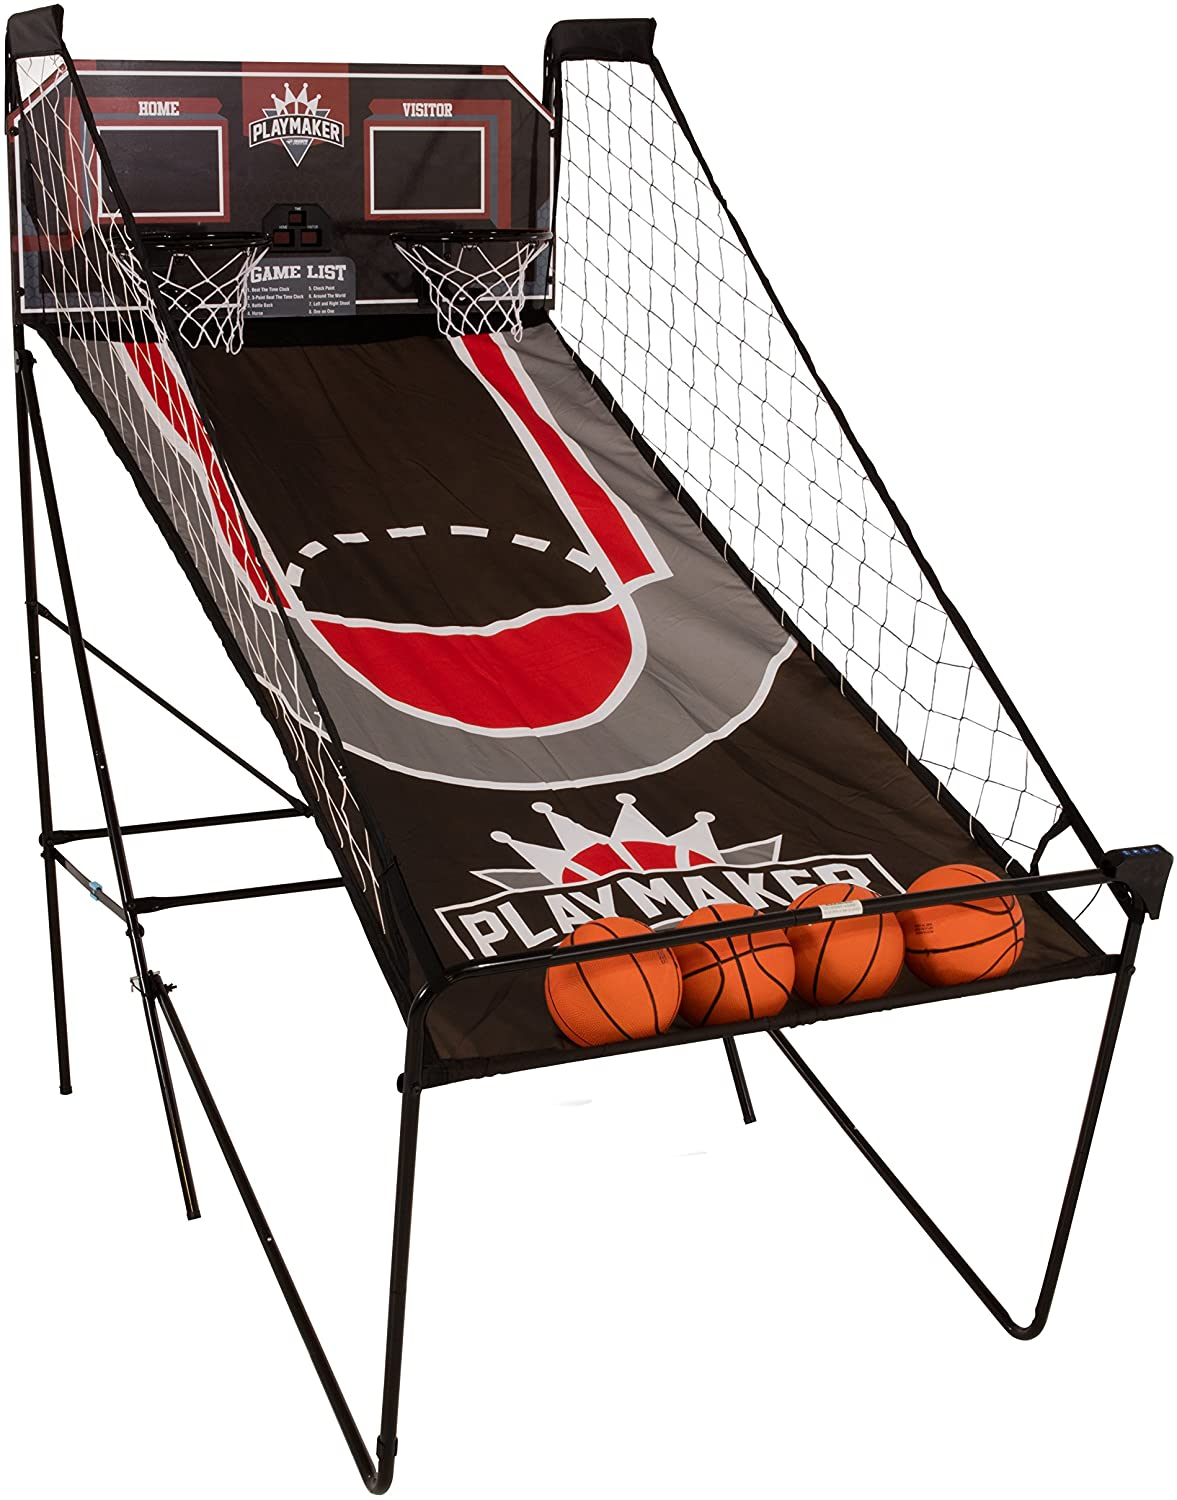 Triumph Play Maker Double Shootout Basketball Game Includes 4 Game-Ready Basketballs and Air Pump and Needle 81Ei8R2SiRLSL1500_